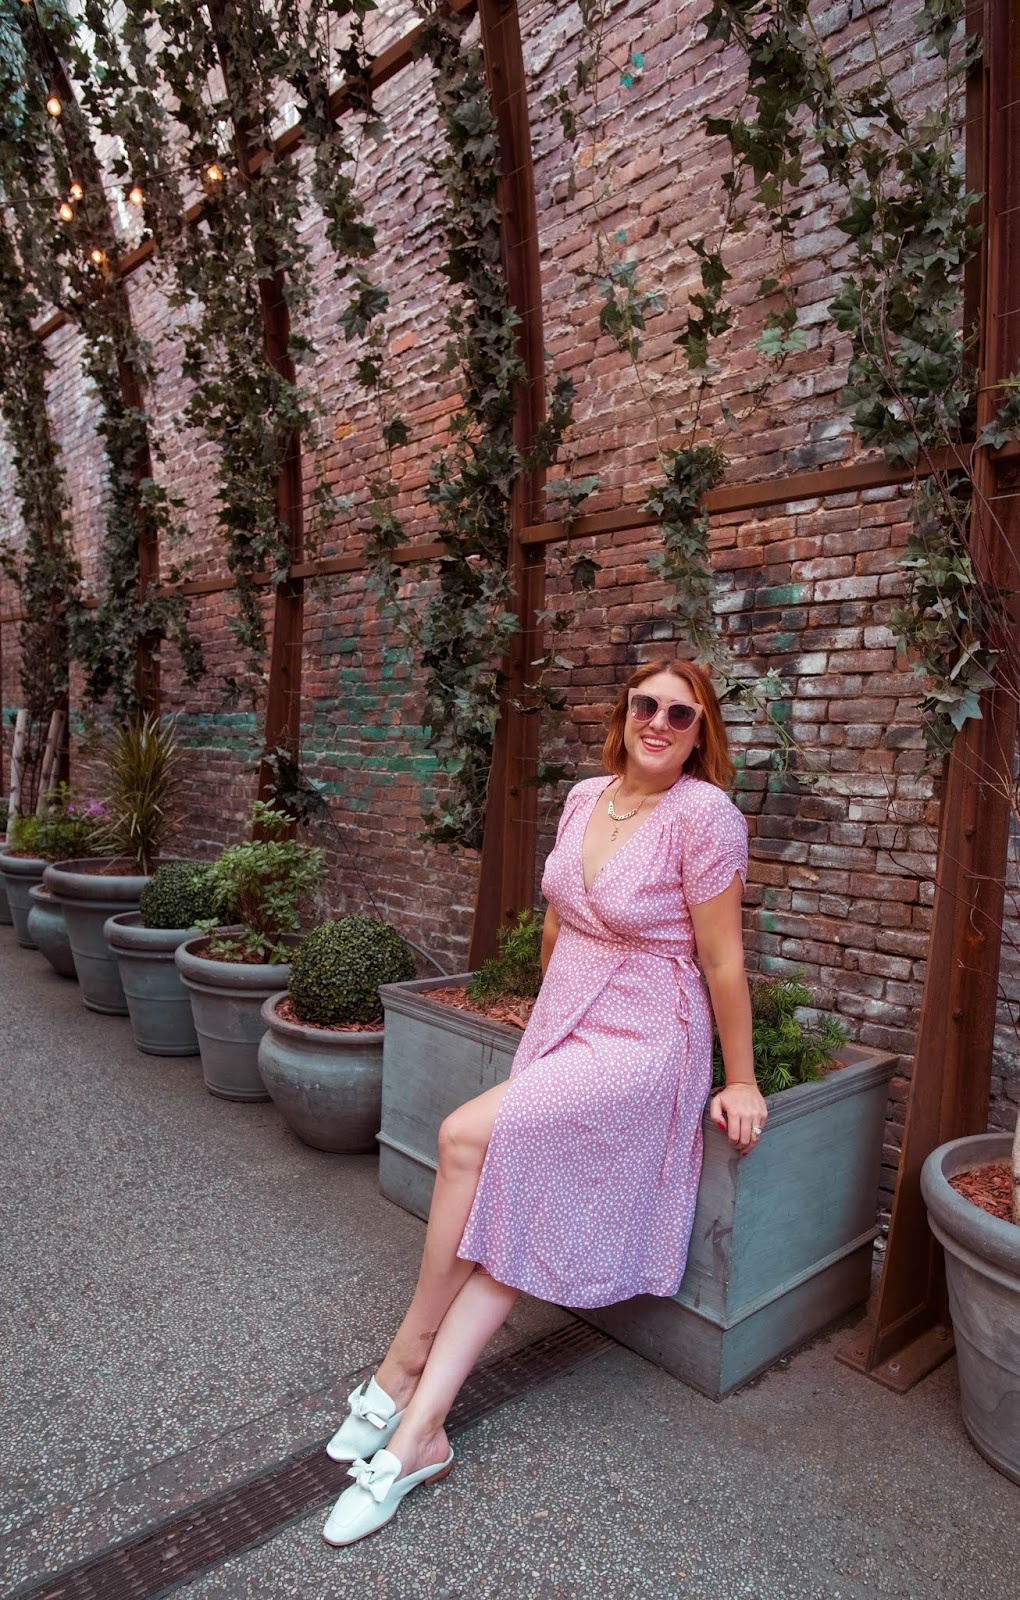 nomo walkway, wrap dress, & other stories mini floral dress, maddy mules, the daily edited circle bag